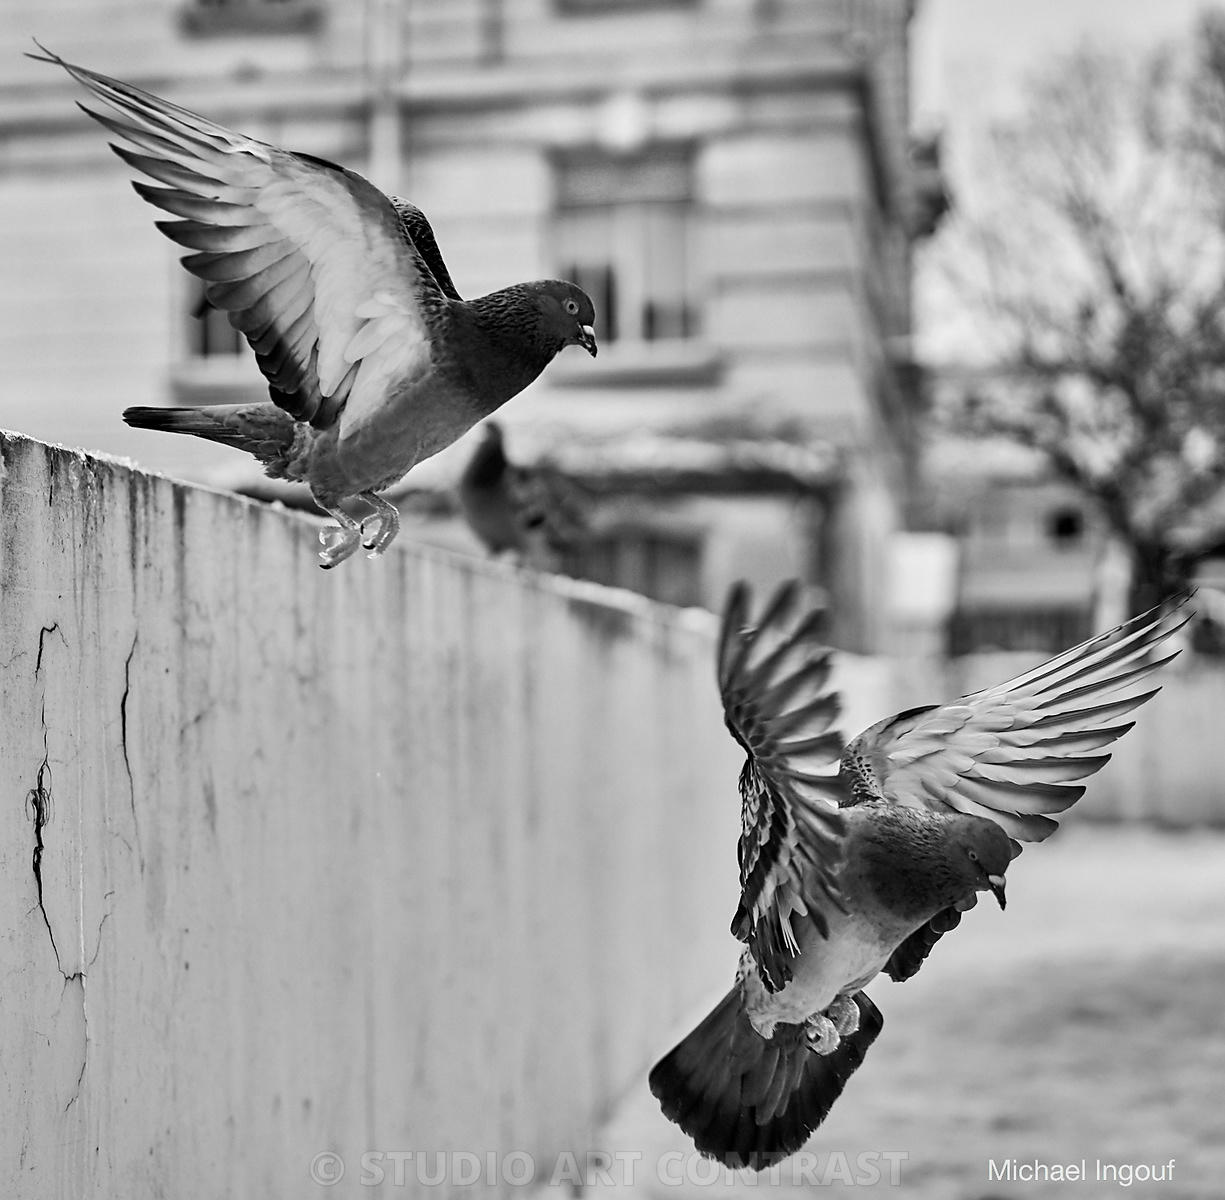 08-02-18_colombes_pigeon_envol_mur_atterissage_plume_aile_duo_BNW_Instagram